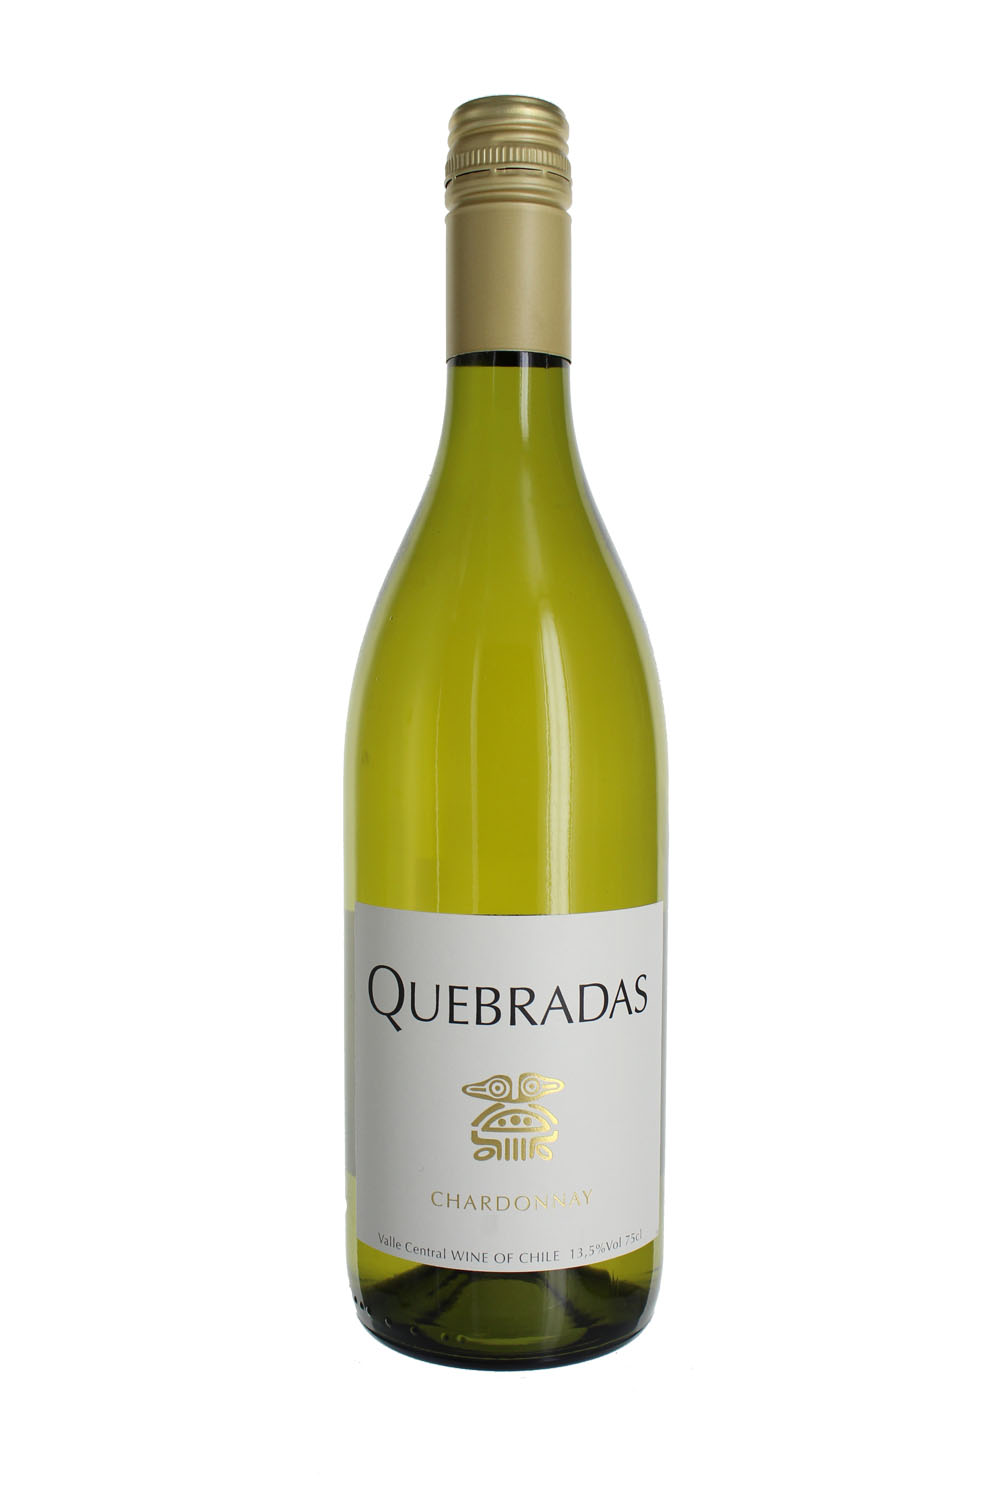 2017 Quebradas Chardonnay, Central Valley, Chile (Case)